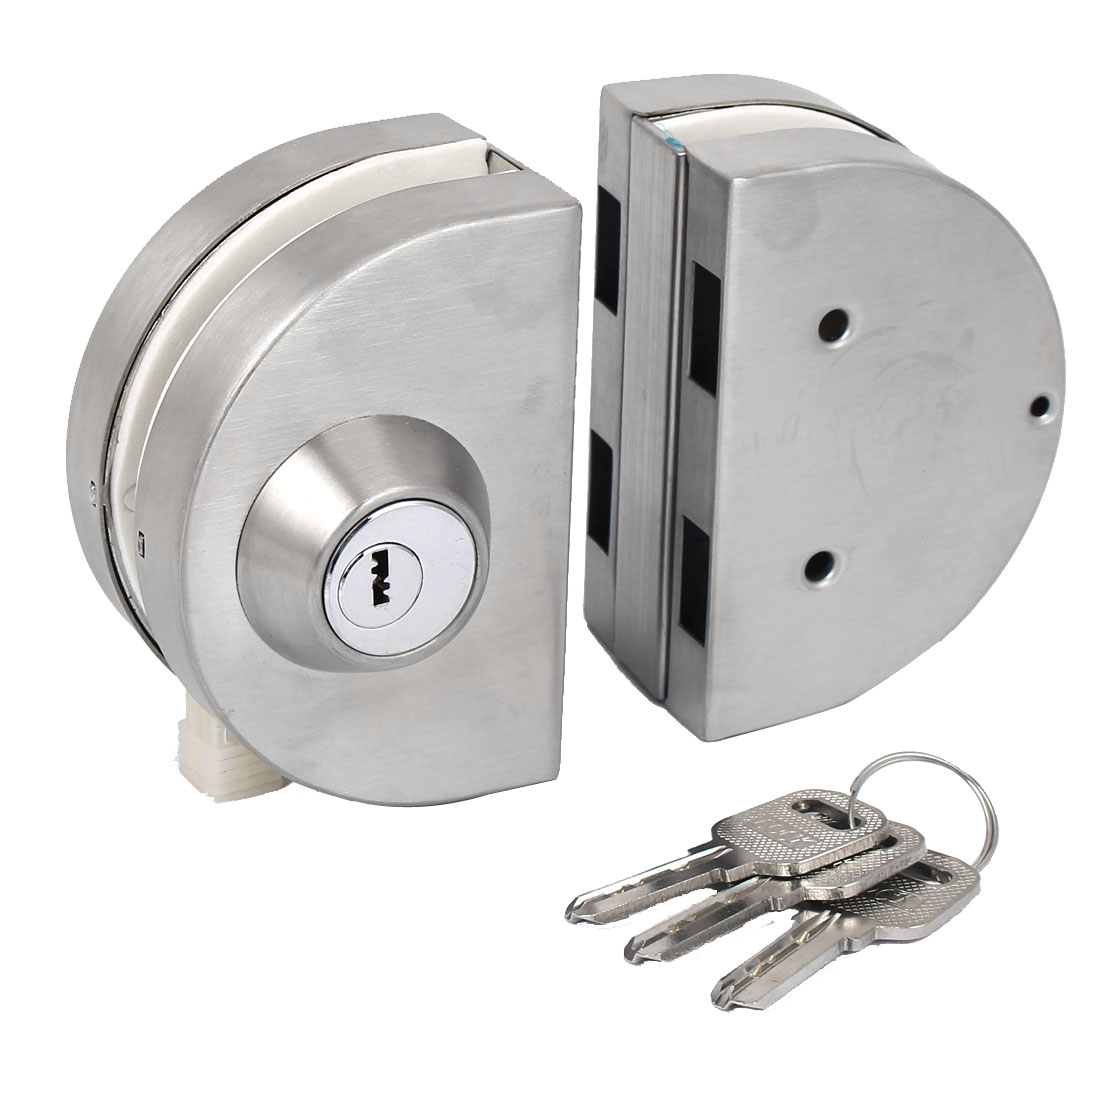 Double Bolts Type Swing Push Sliding Door Locks with Keys 8-10mm Thickness Glass